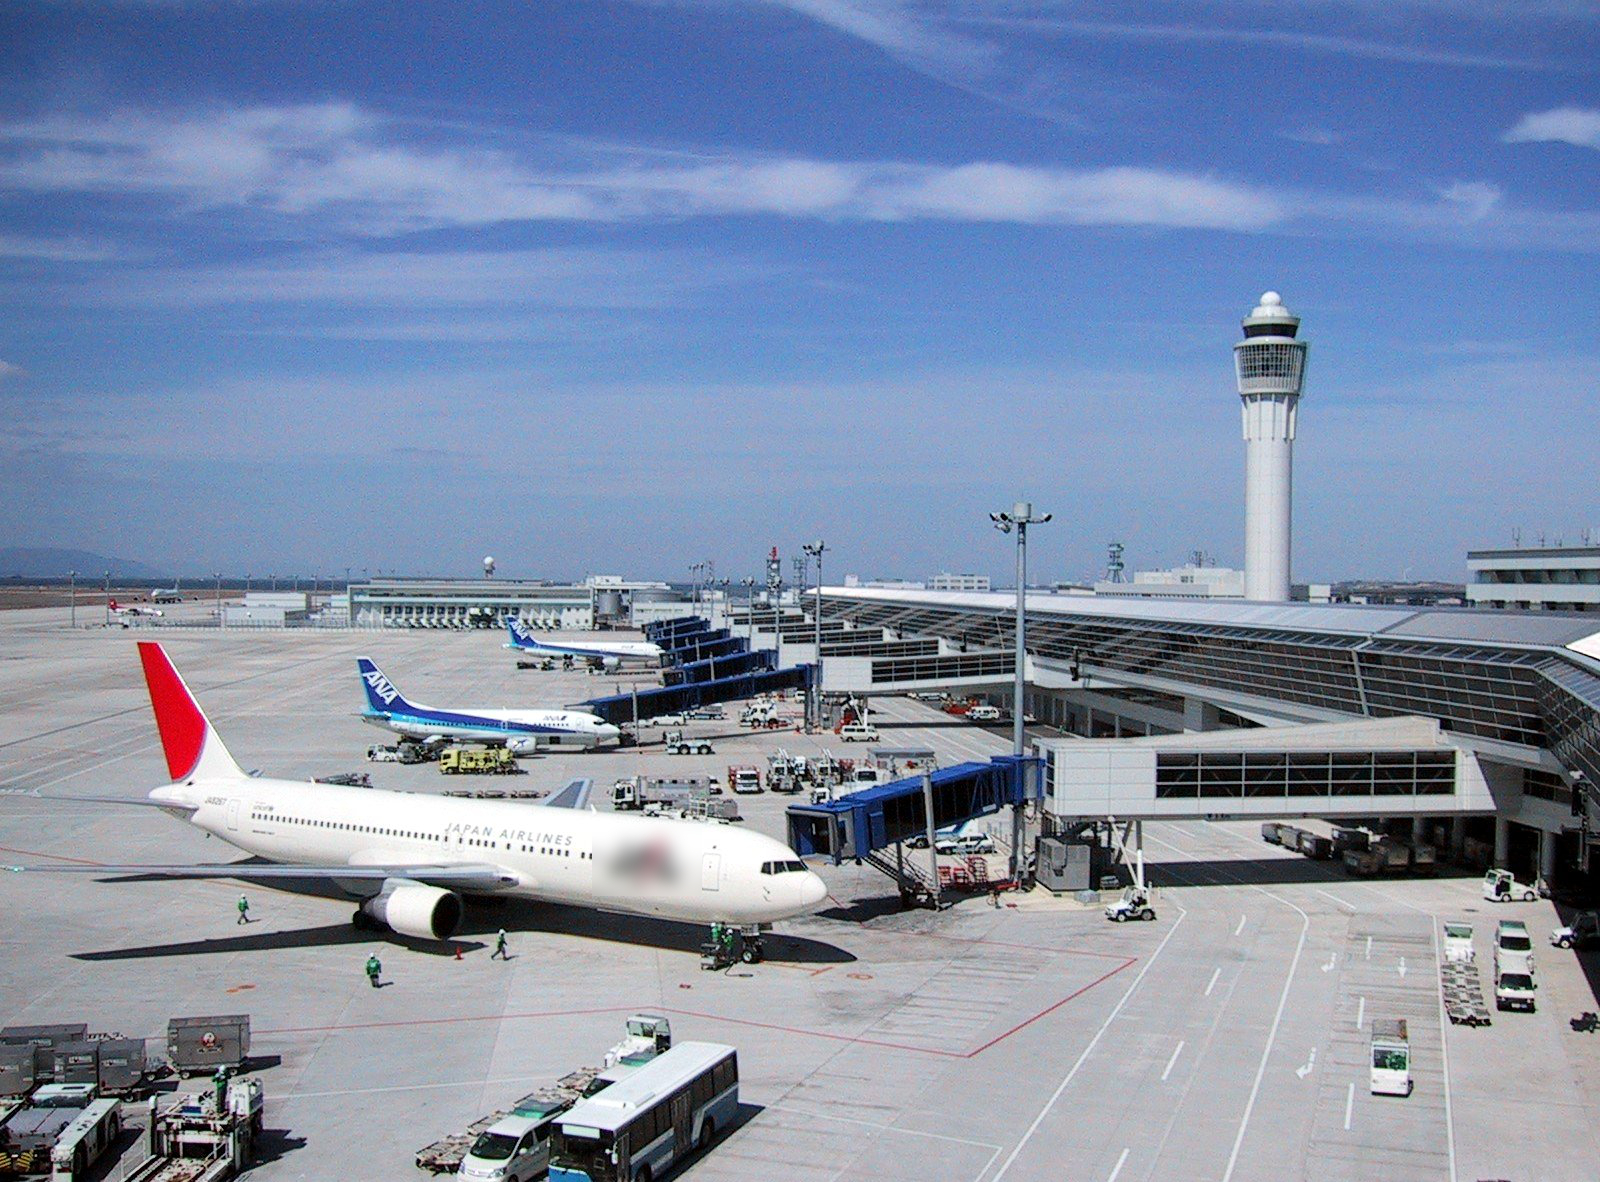 Feasibility study of an International Airport Fuel System